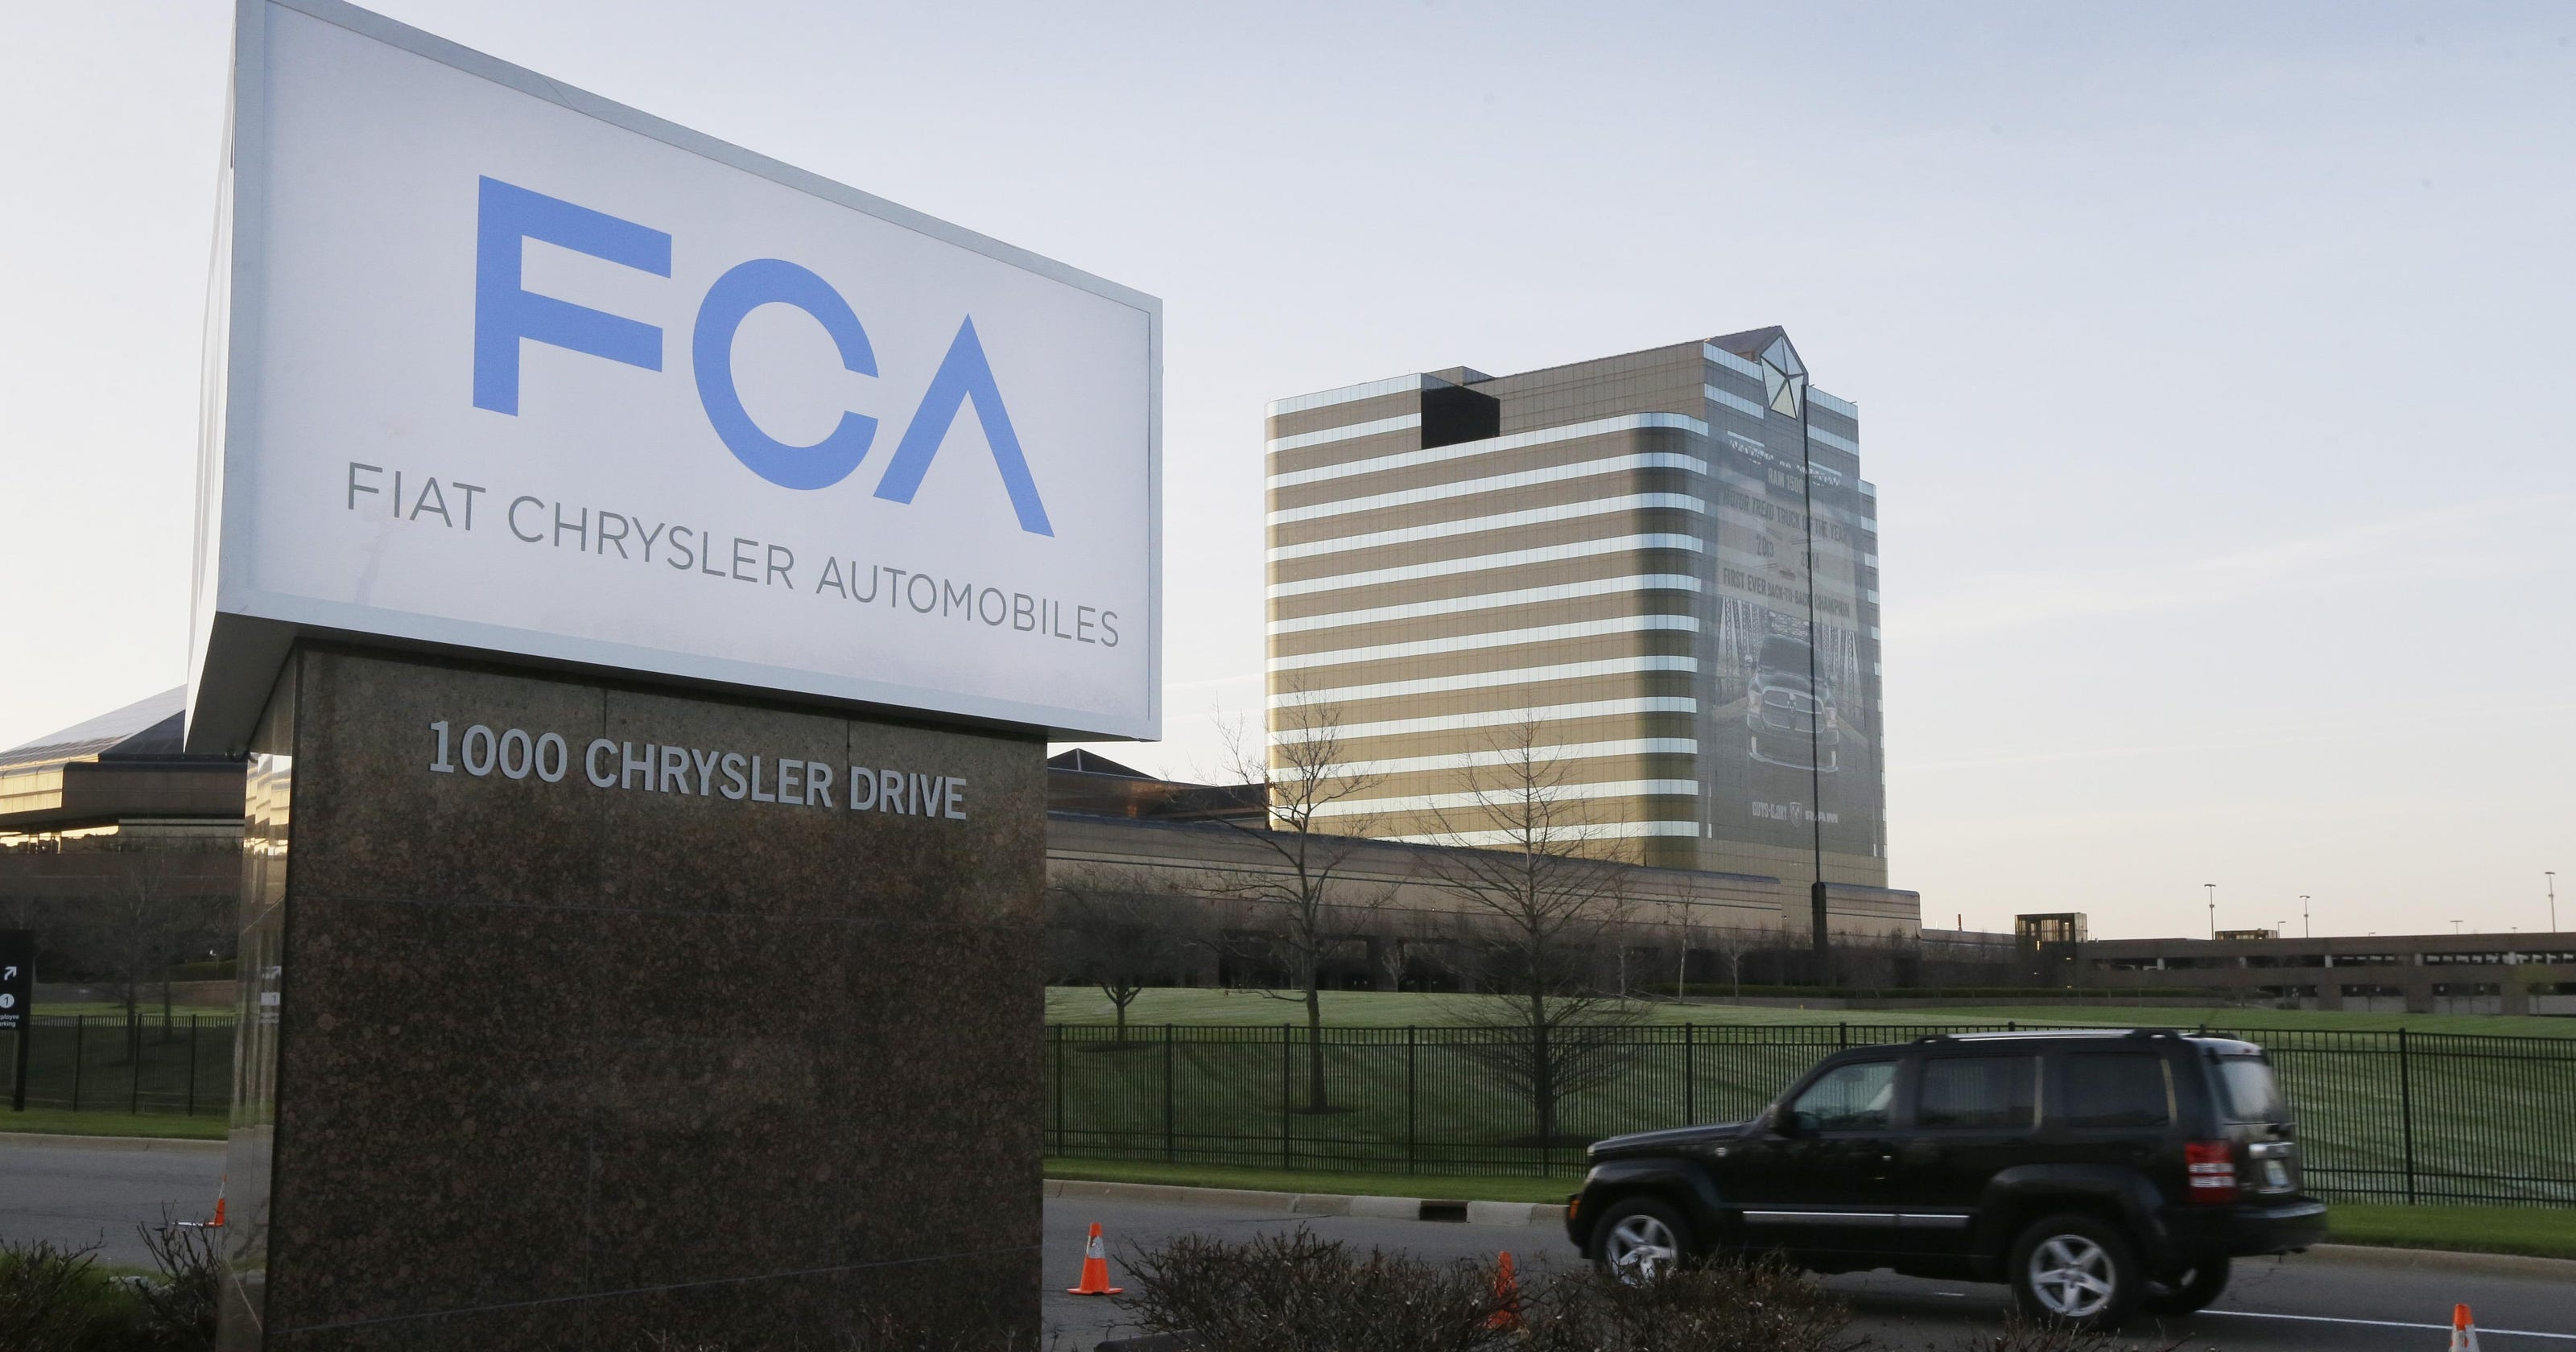 FCA suit emails suggest diesel cheat known in 2010